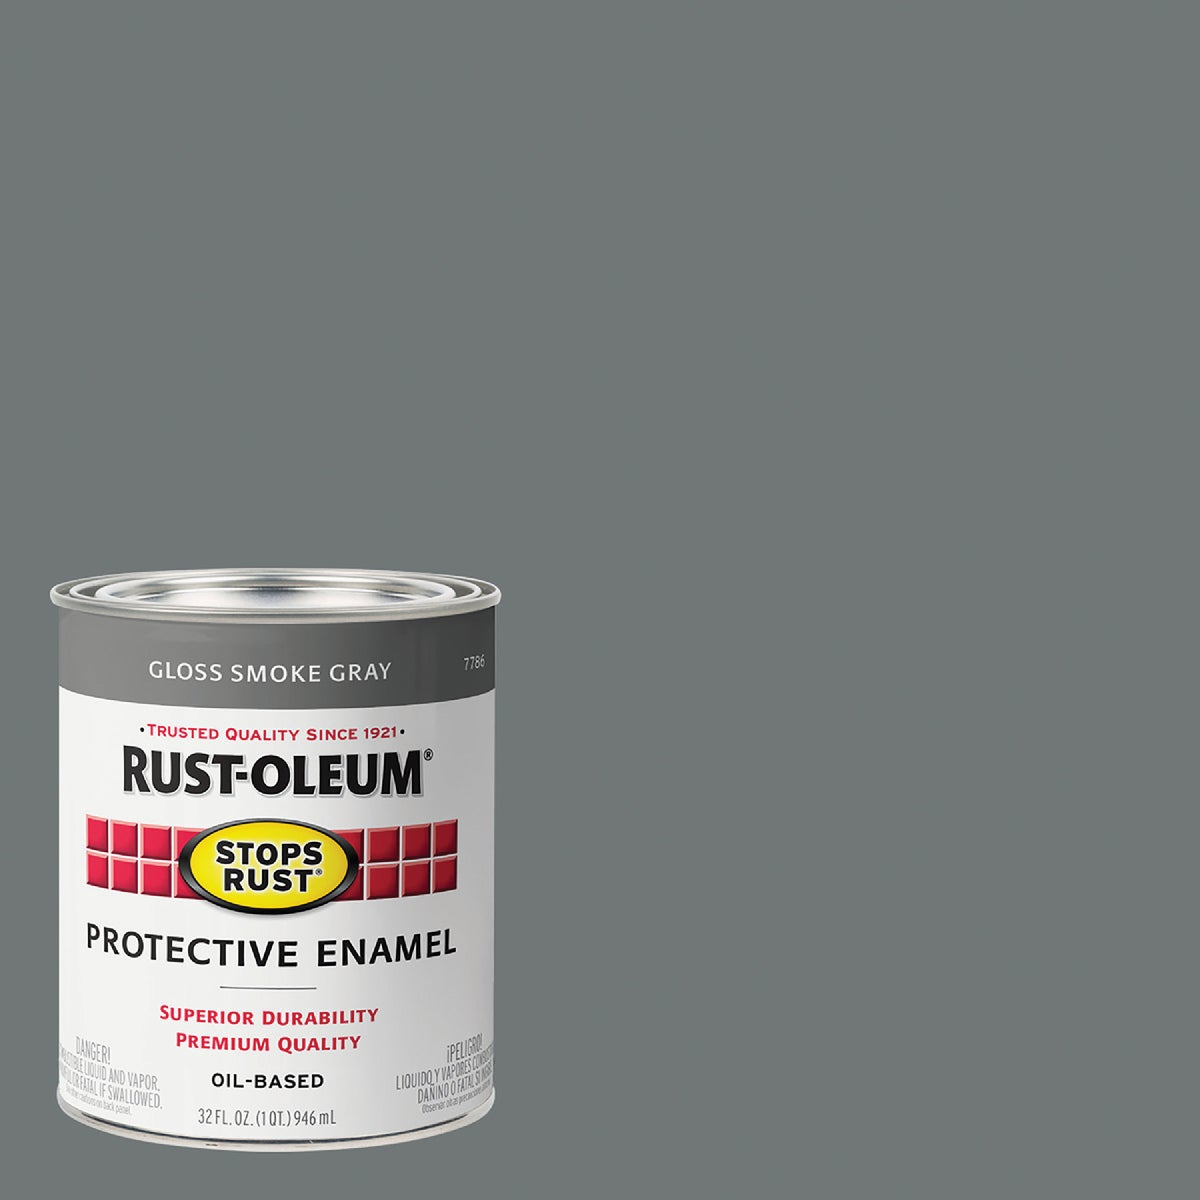 SMOKE GRAY ENAMEL - 7786-502 by Rustoleum